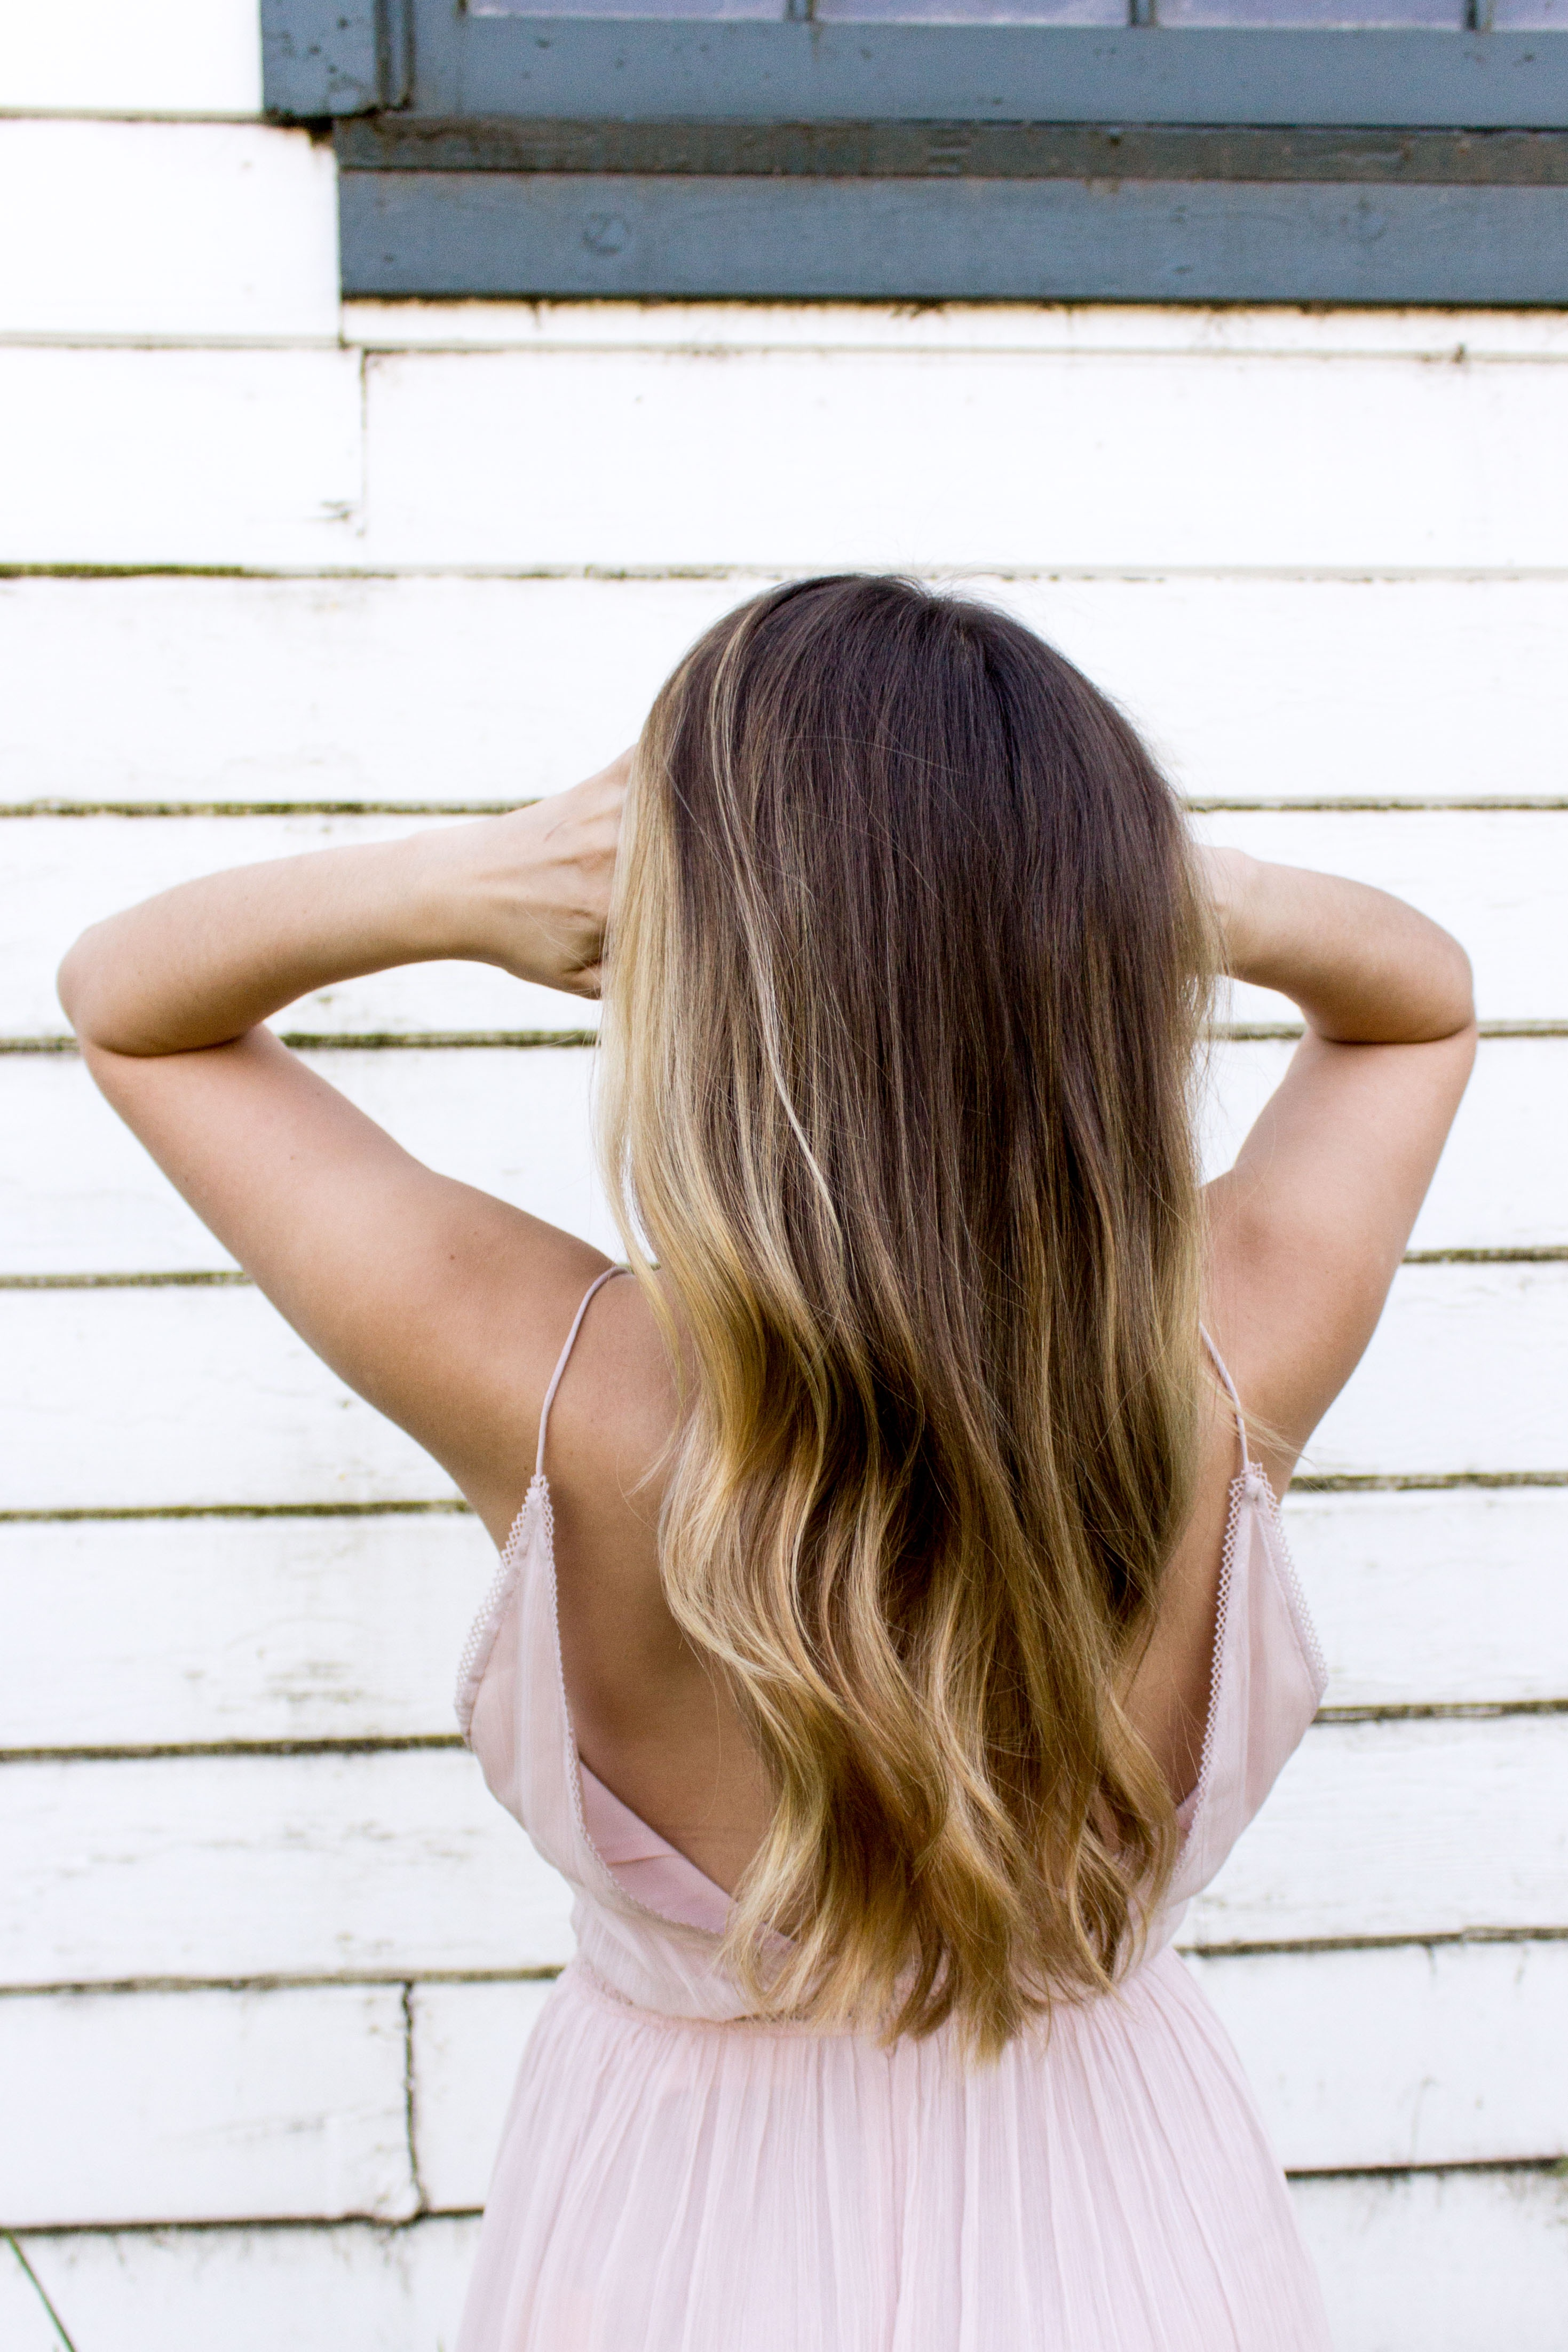 8 Hair Hacks You Need to Know